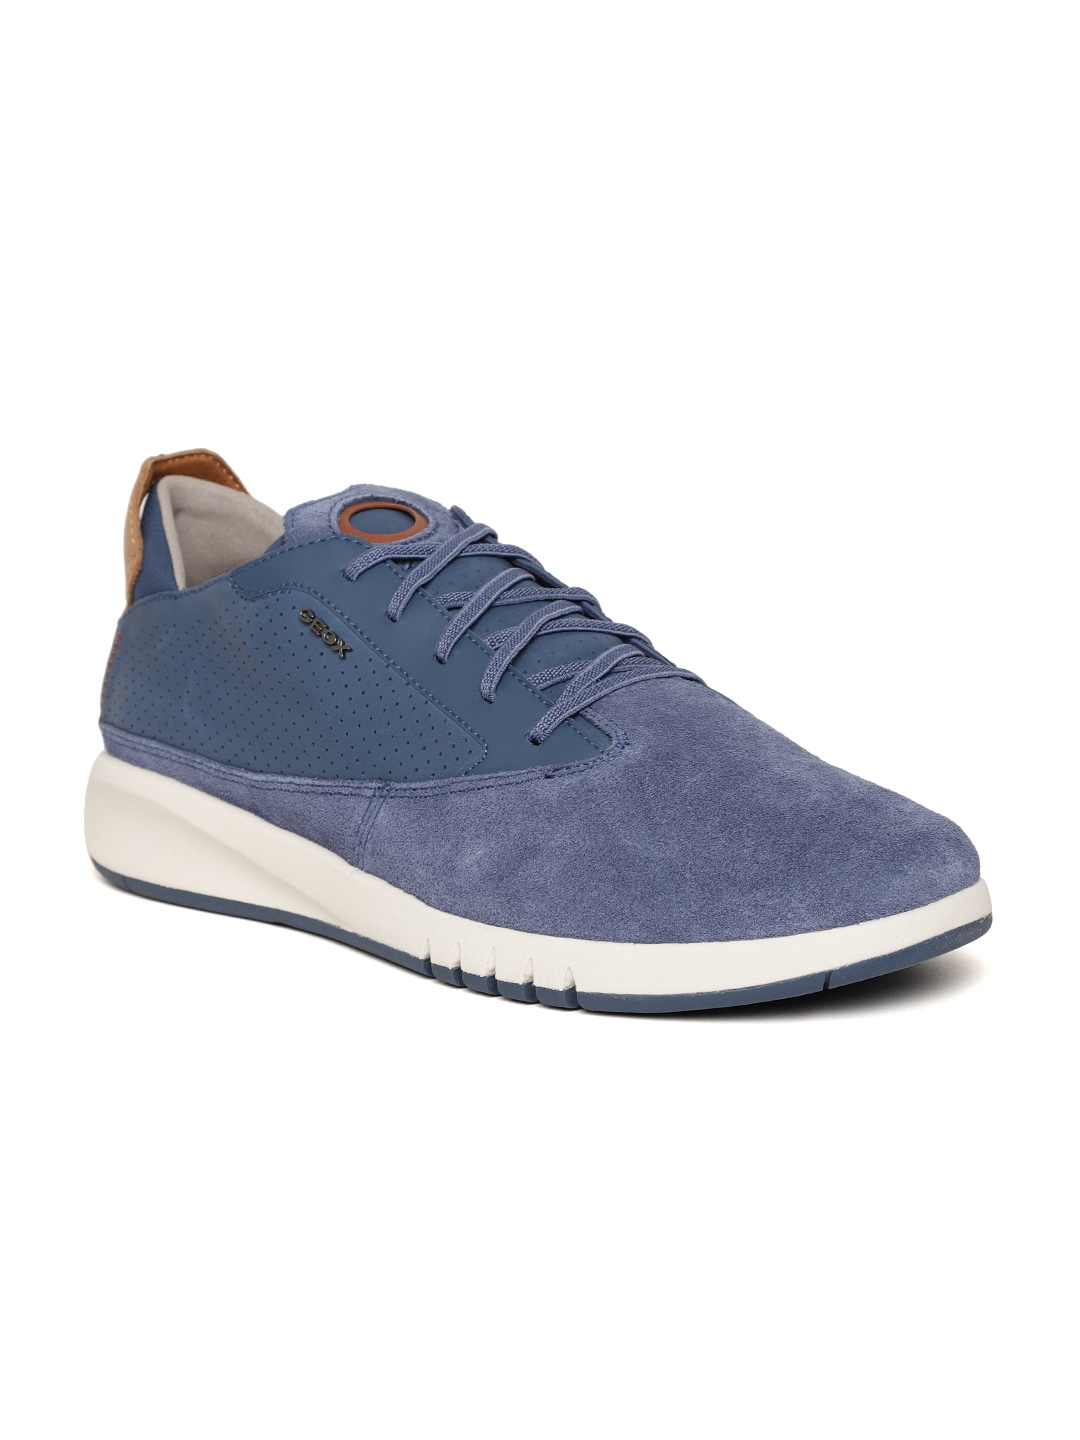 Blue Leather Perforated Sneakers